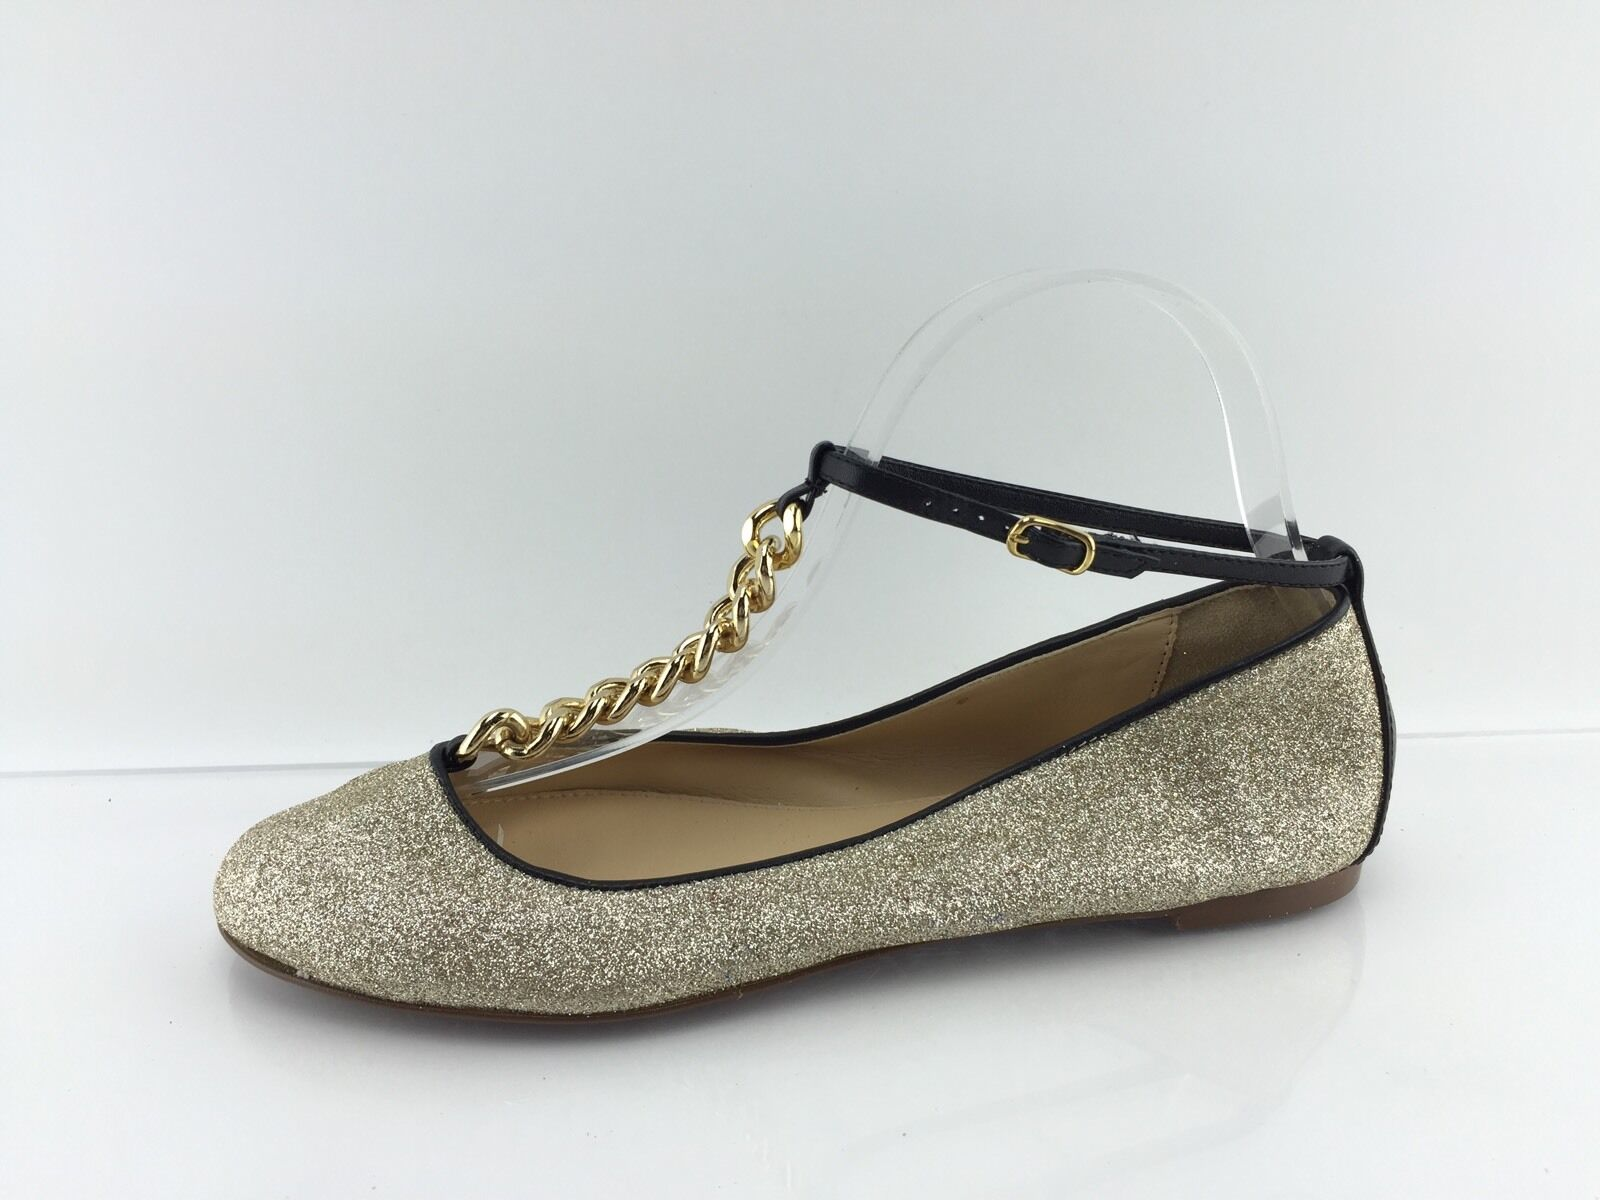 J Crew Women's gold Glittered Flats 7